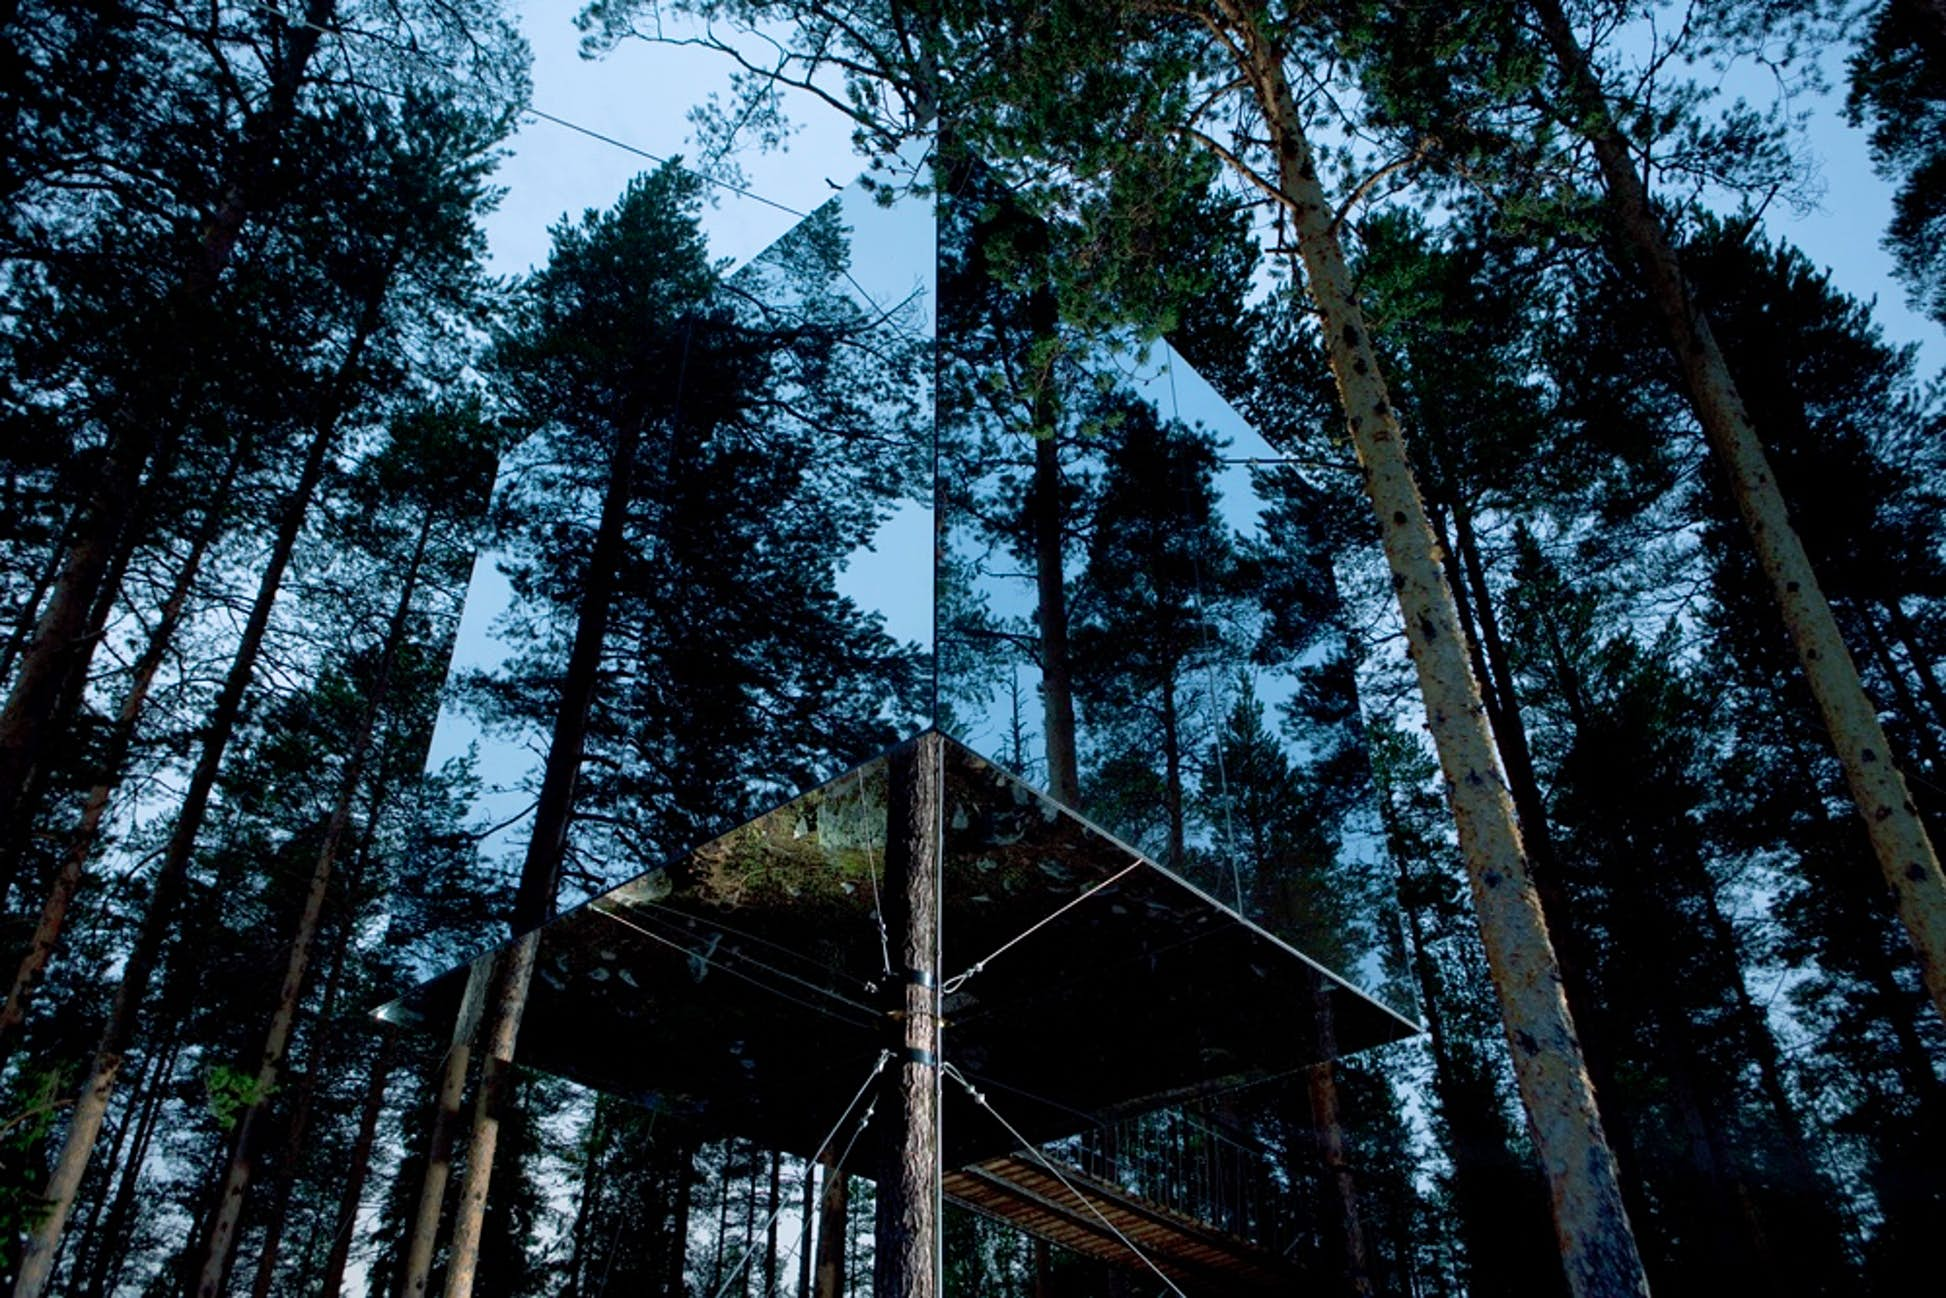 The Mirrorcube at the Treehotel is almost invisible @ Courtesy of Treehotel